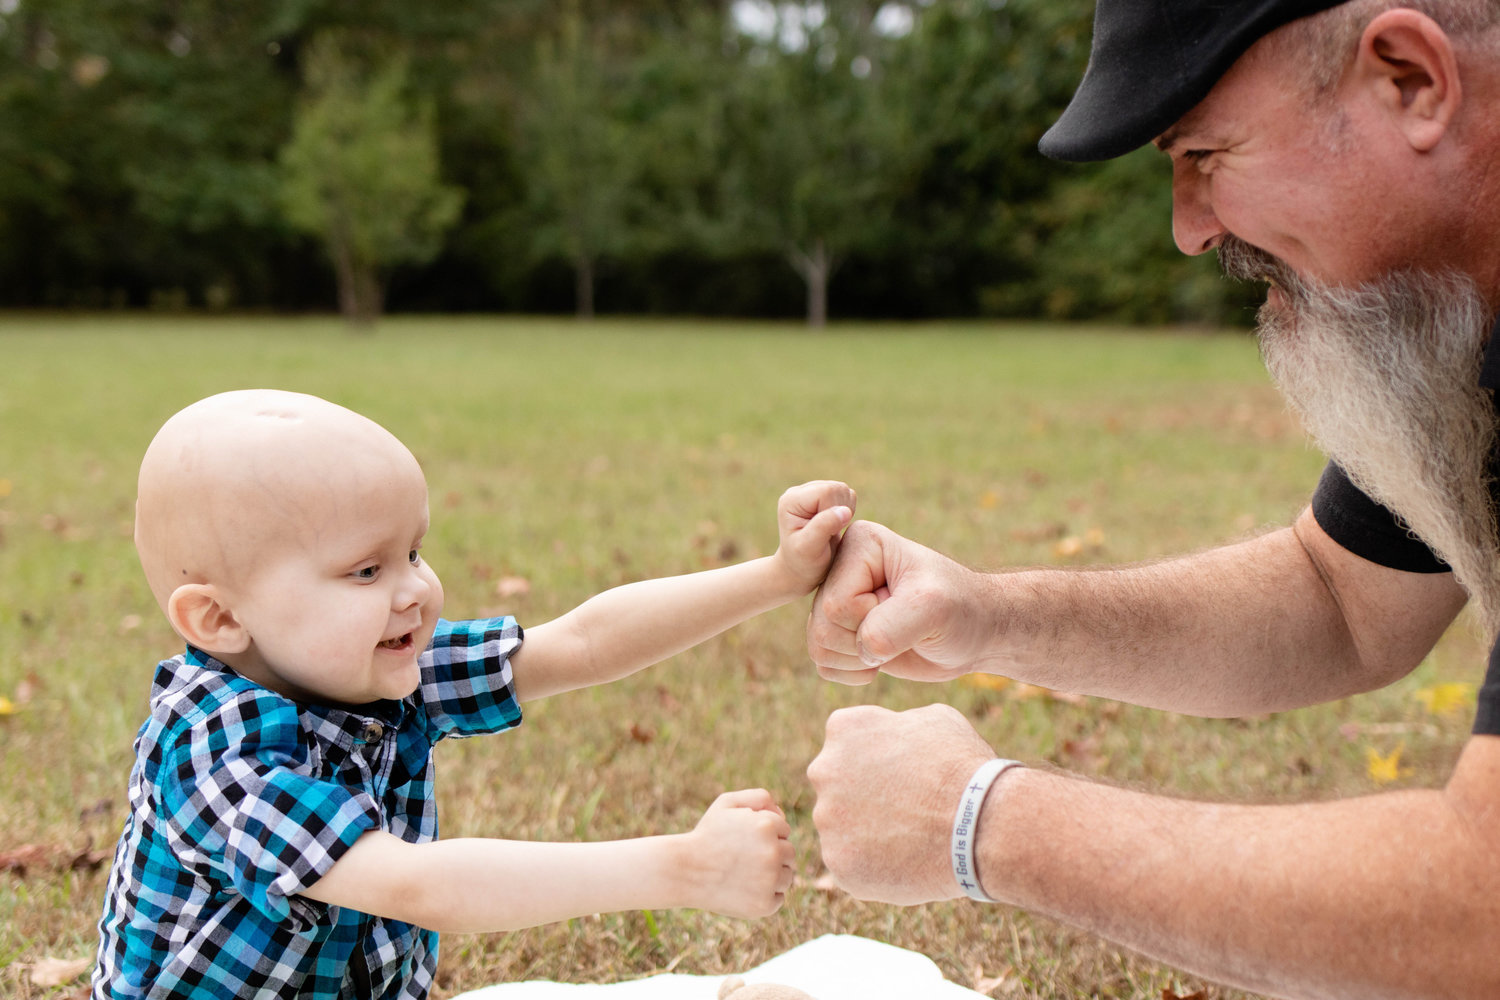 Wyatt Spann and his father, Greg Spann, are seen in a photo shoot by Brittany Hackleman in September.